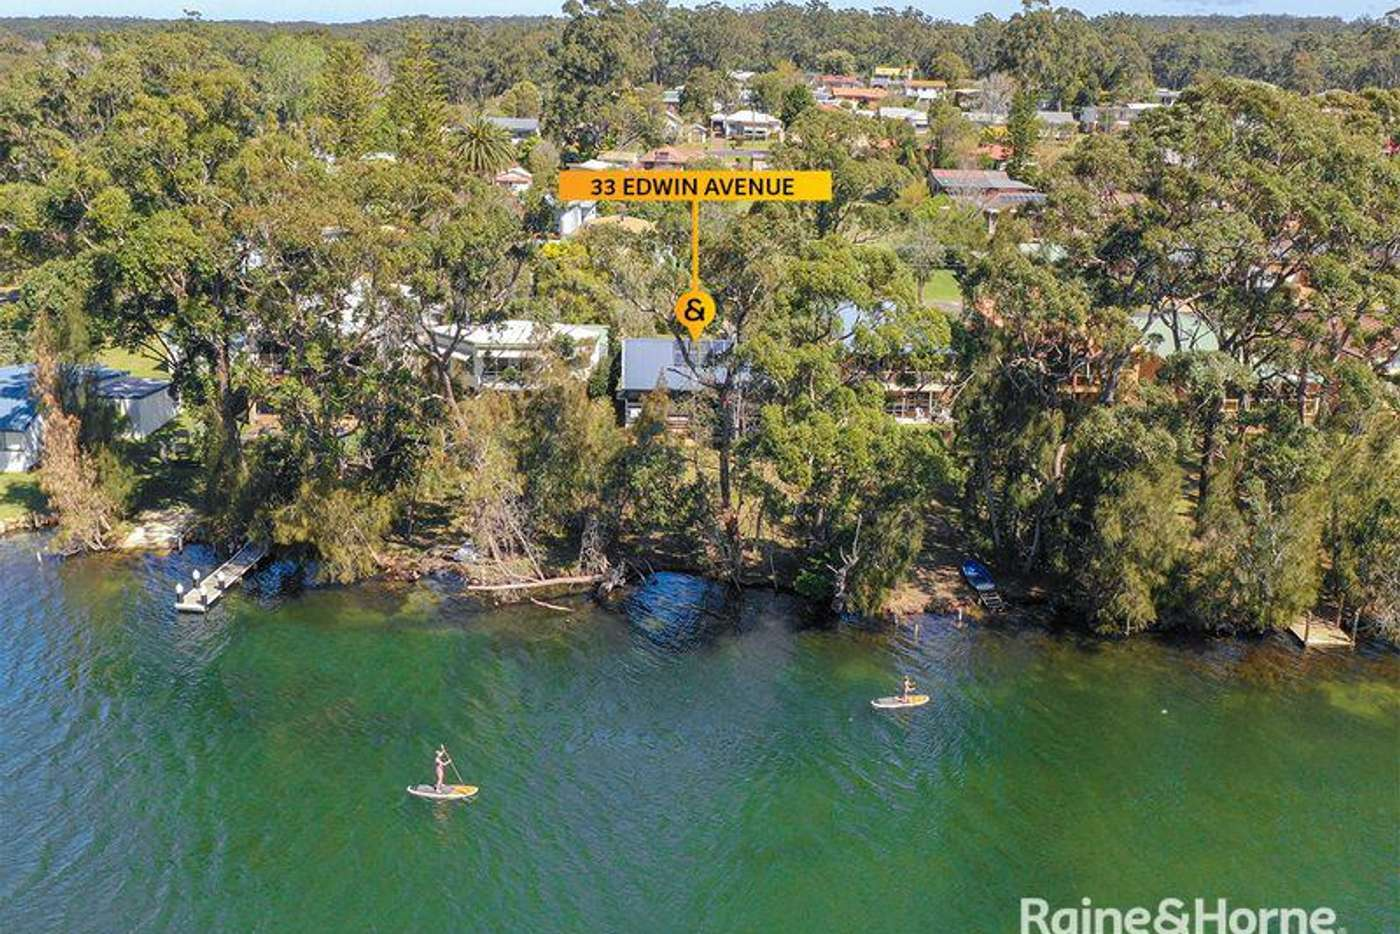 Main view of Homely house listing, 33 Edwin Avenue, Lake Conjola NSW 2539